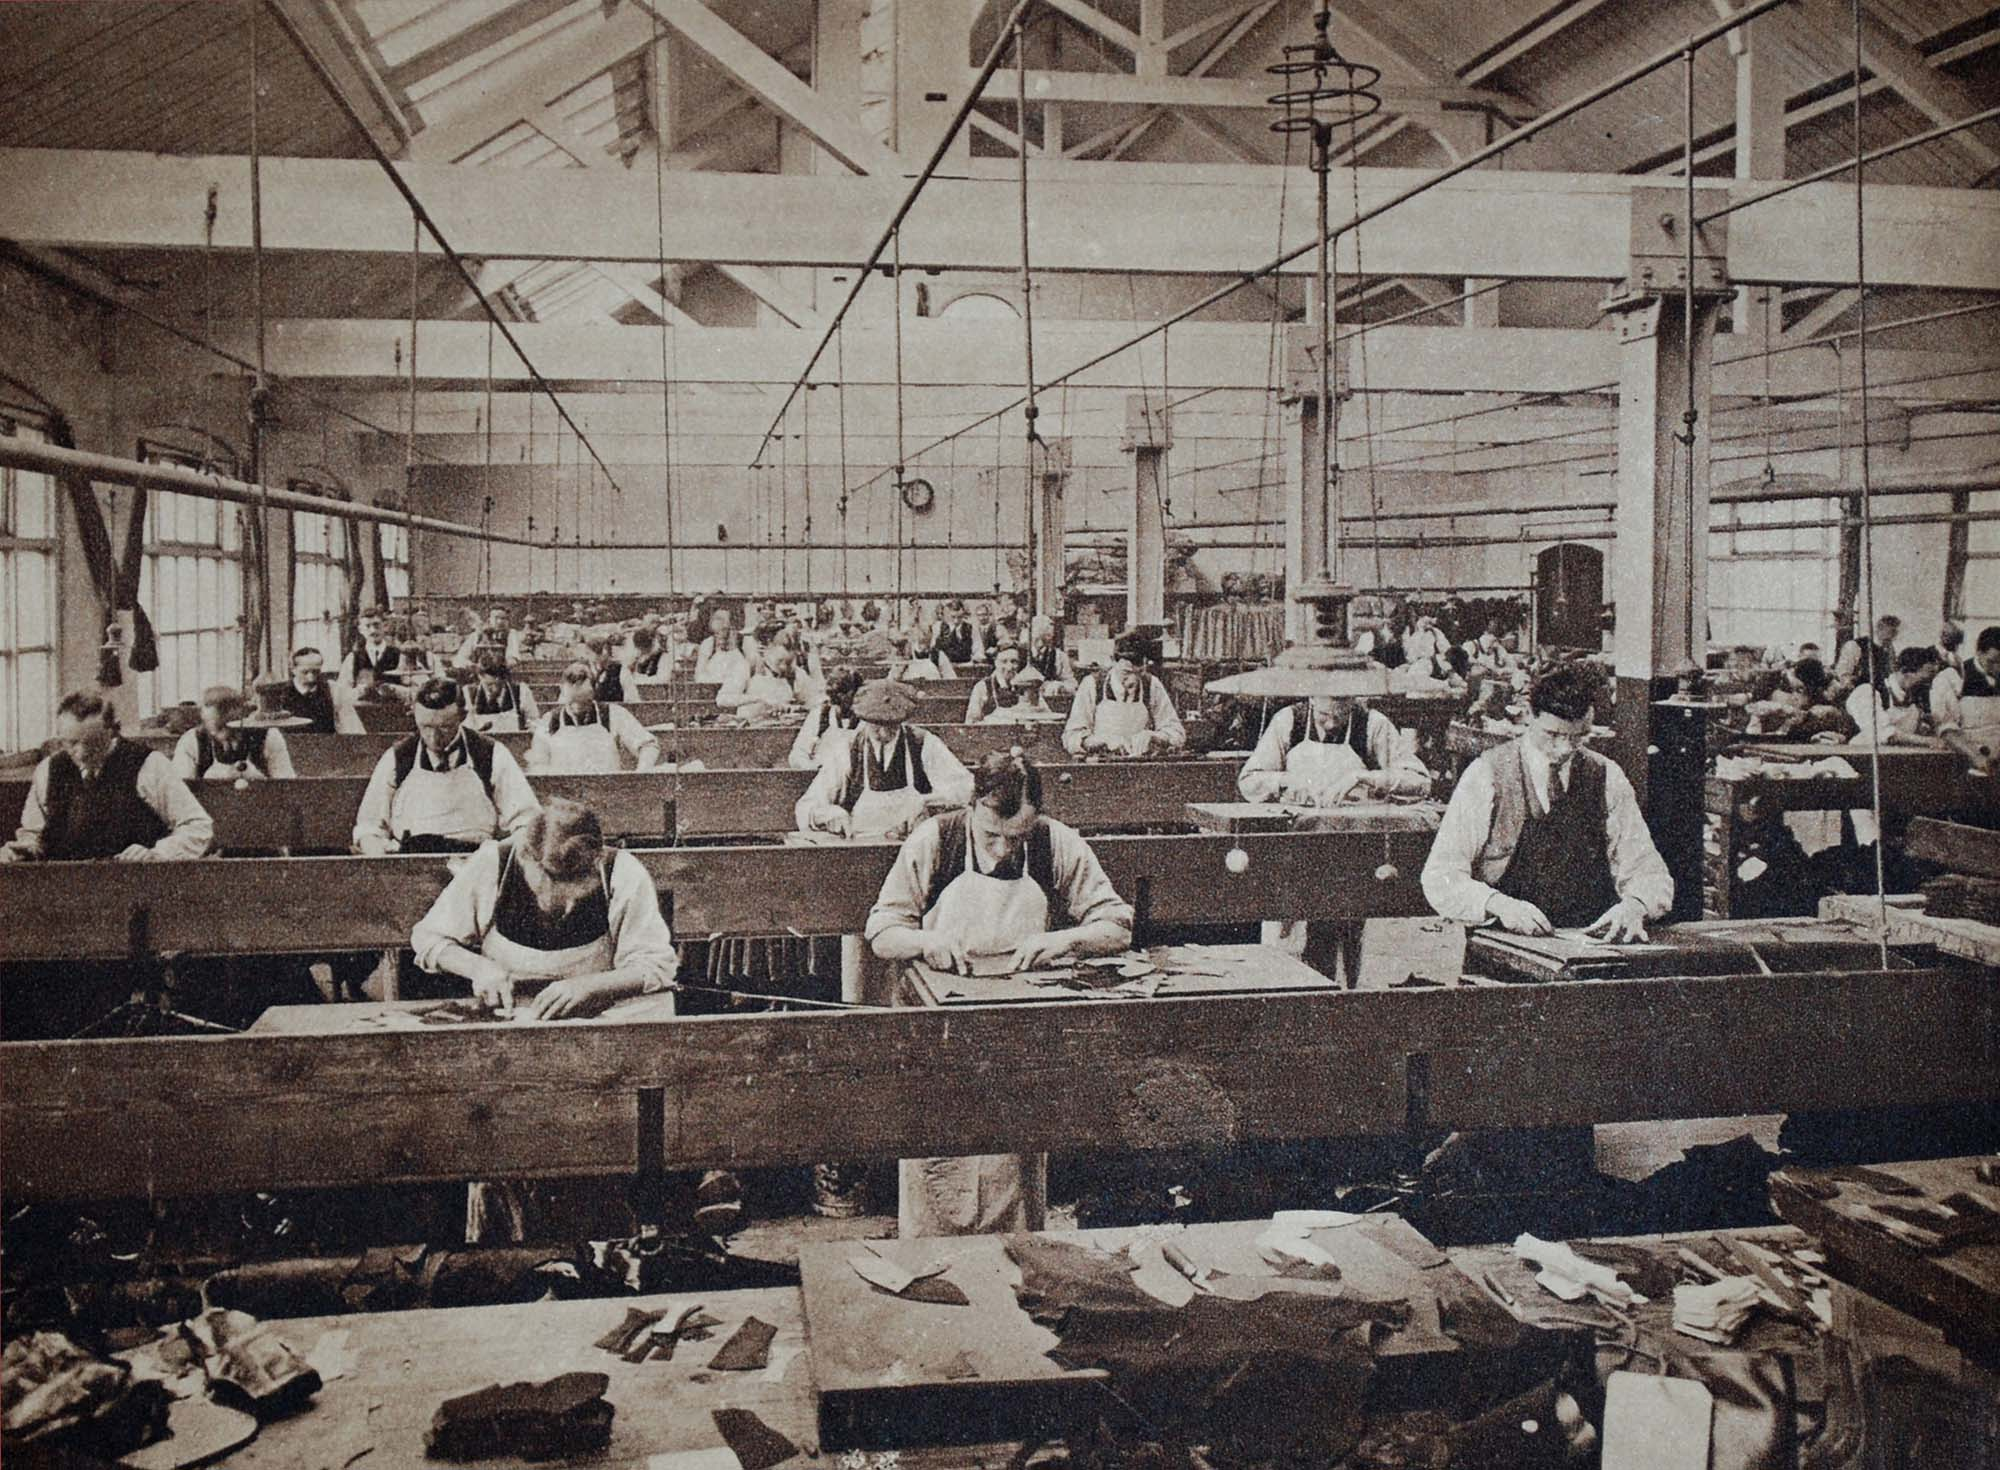 The factory floor of a shoe manufacturing company in Leicester, 1930s -